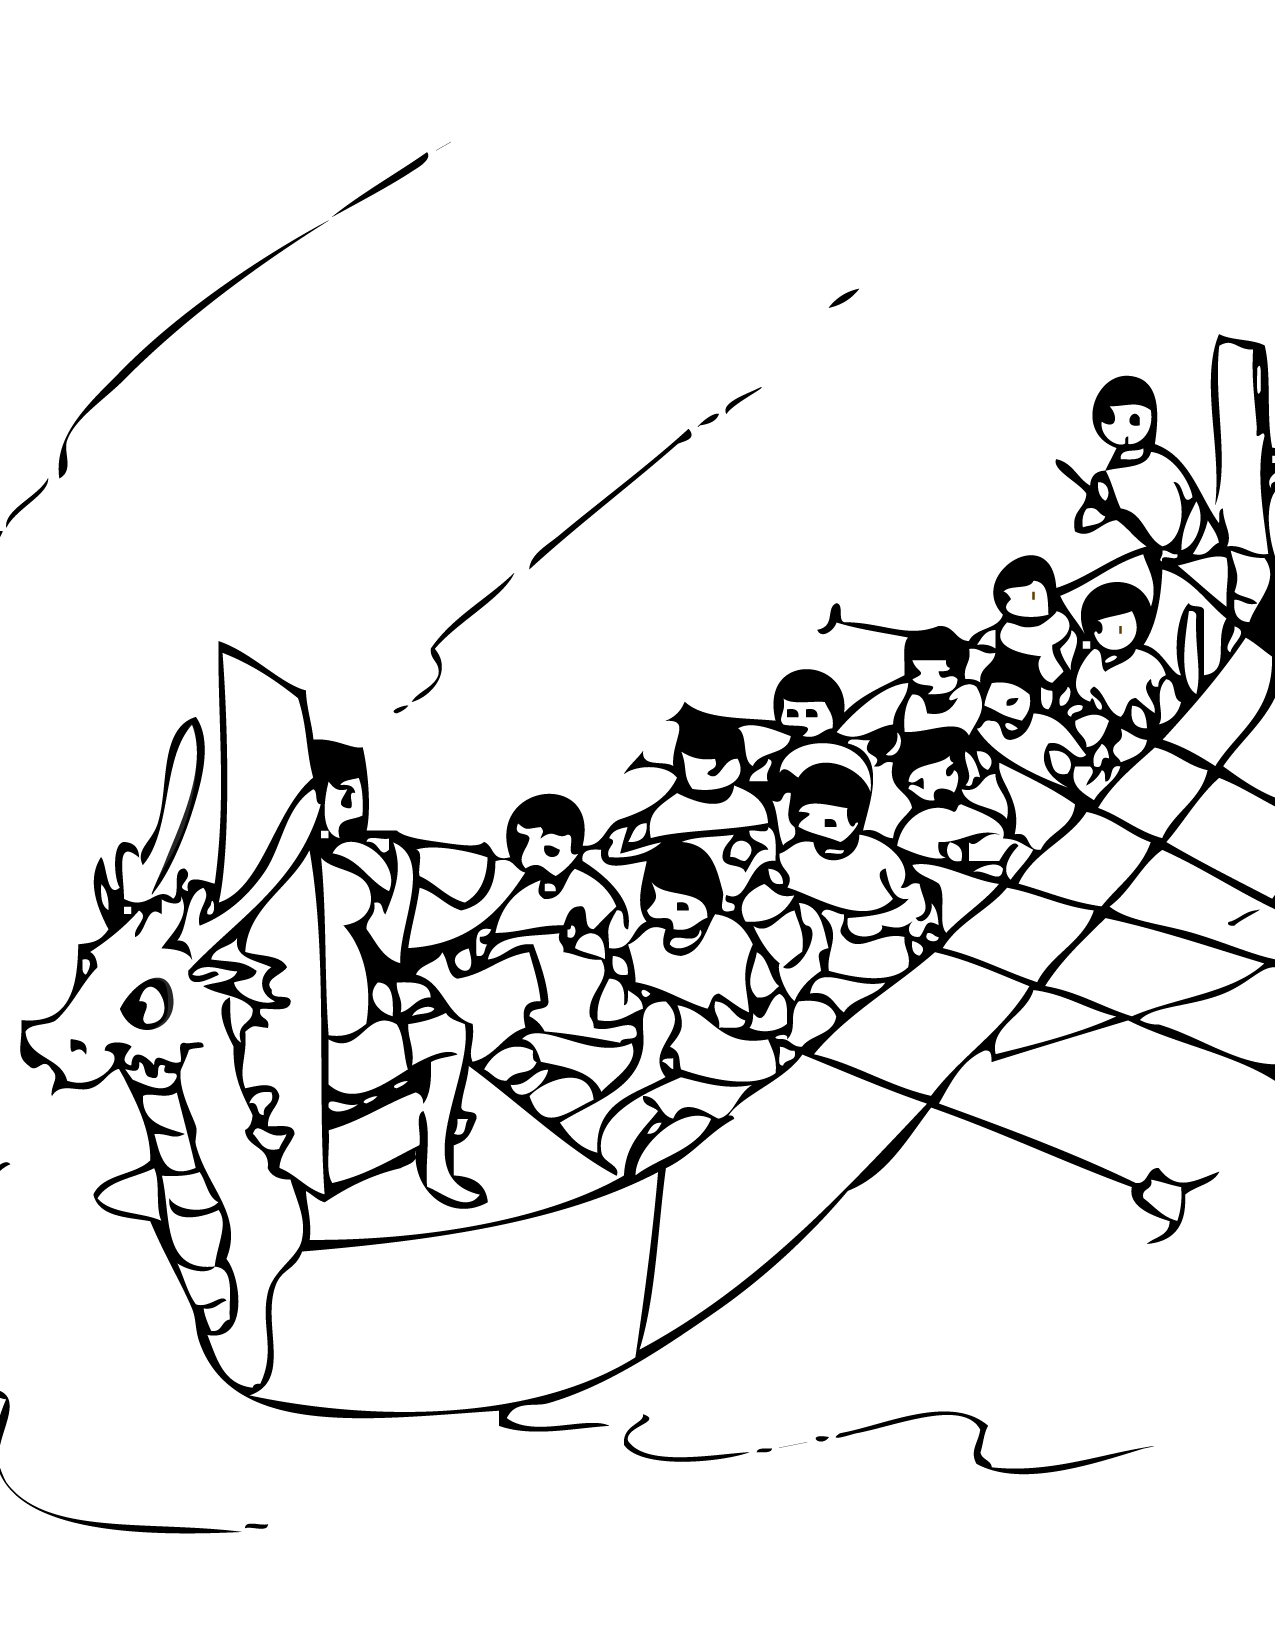 Dragon Boat Festival Coloring Page